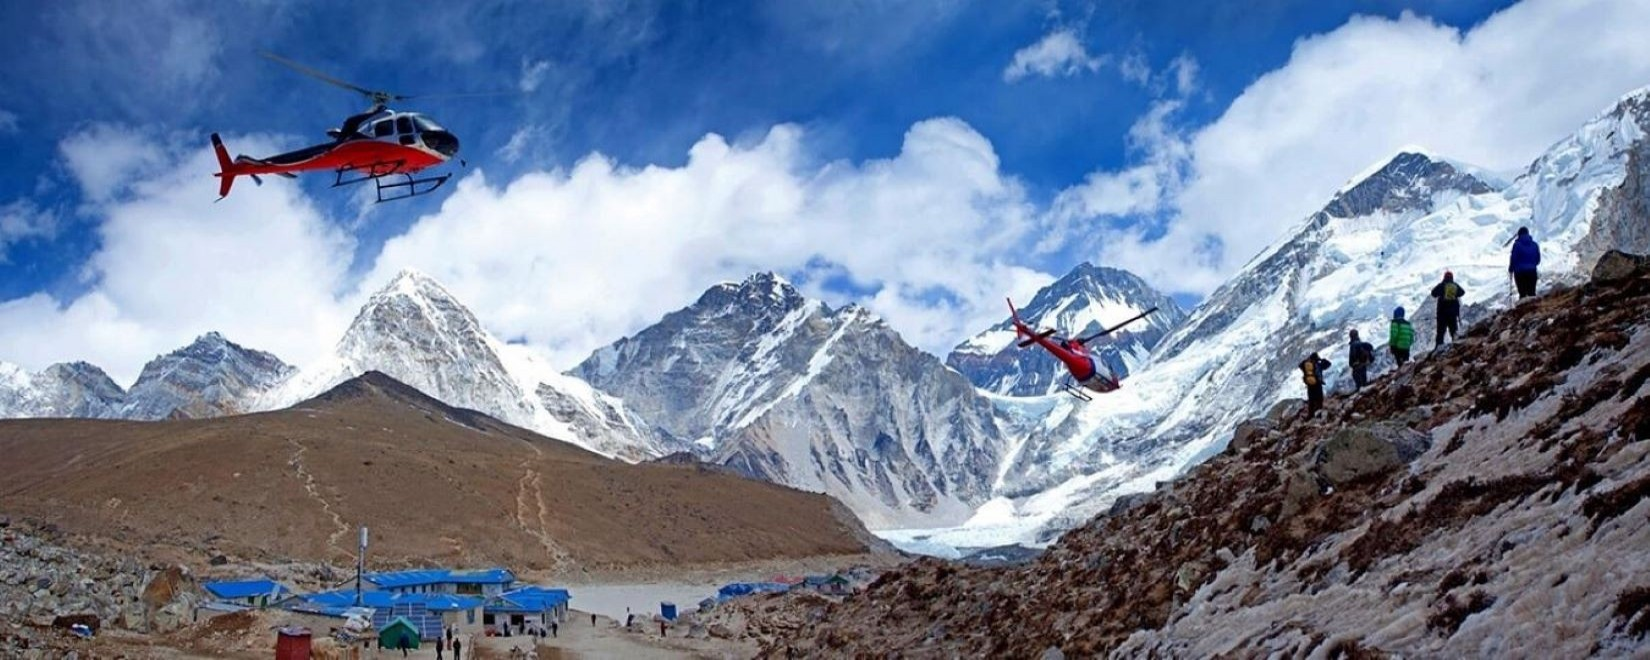 Luxuries Helicopter Tour & Short Trekking In Nepal